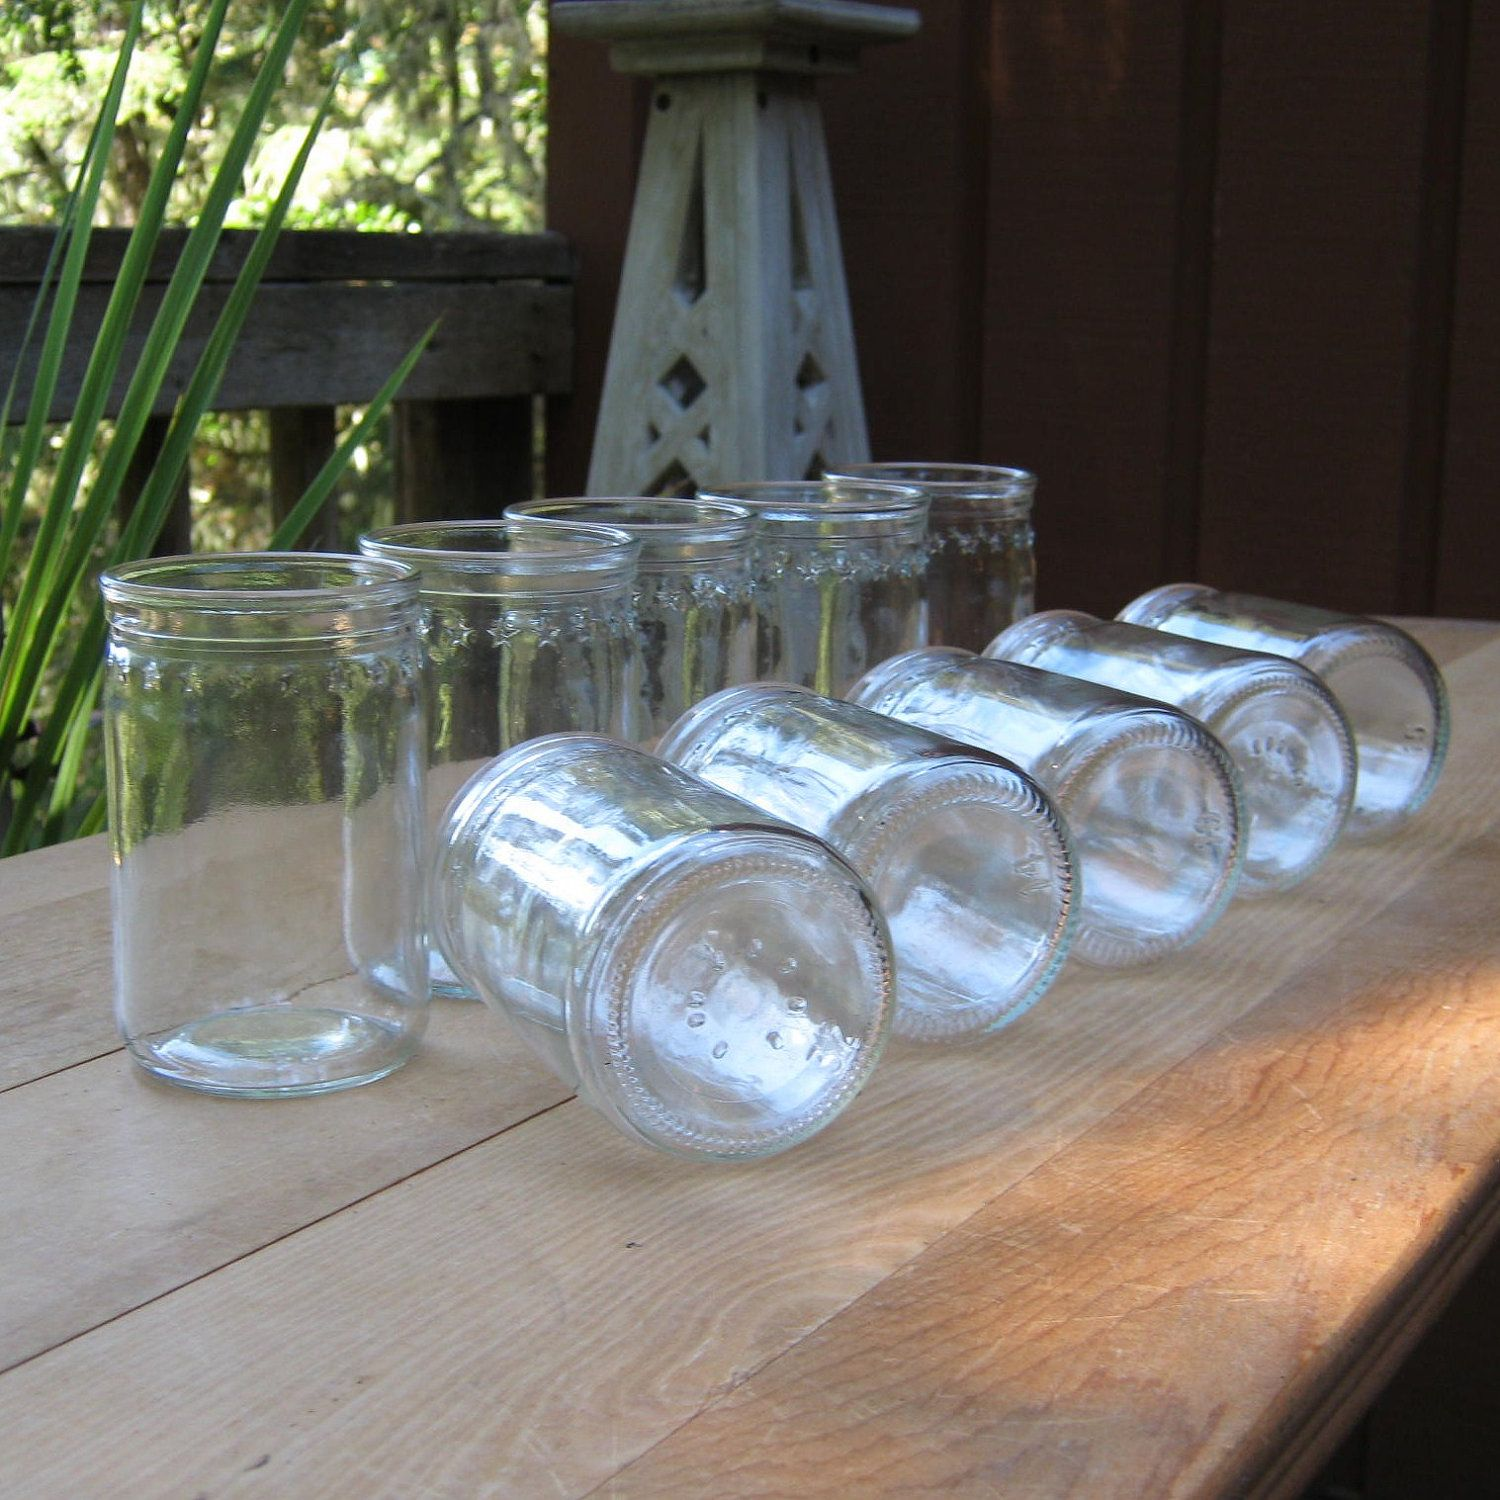 Set of 10 Jelly Jar Glasses With Stars.